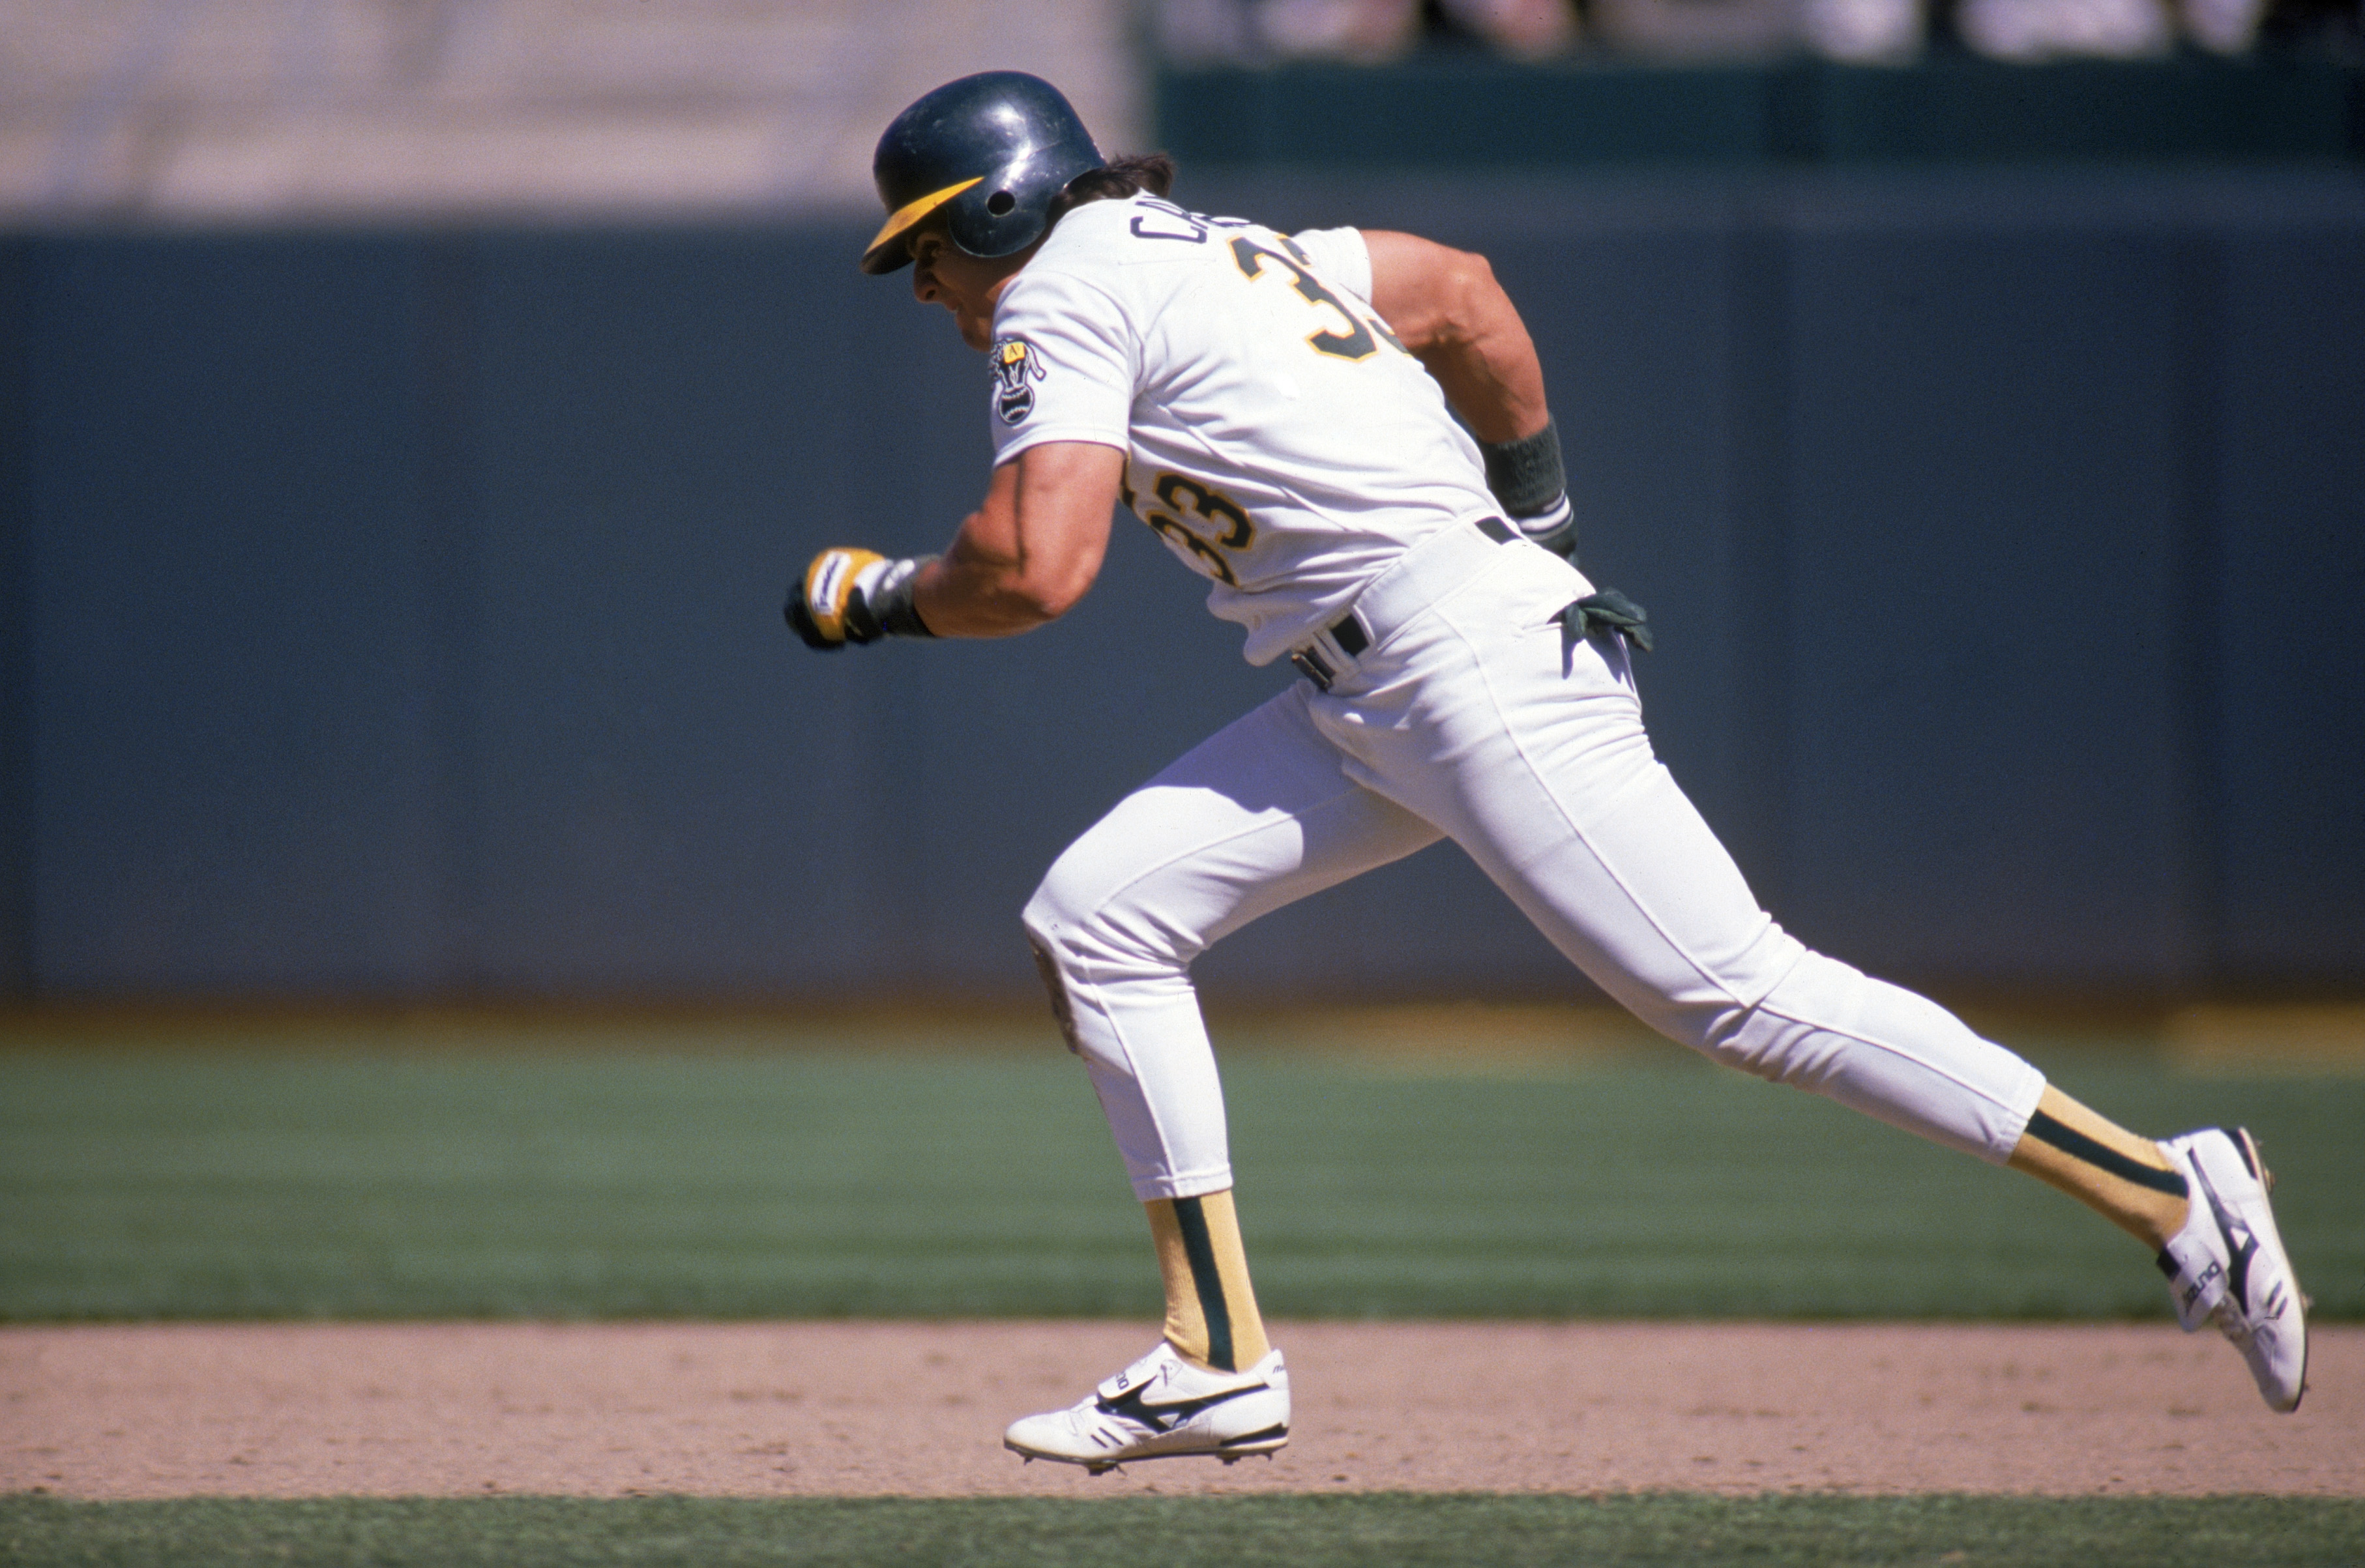 OAKLAND, CA -1988:  Jose Canseco #33 of the Oakland Athletics runs between the bases during a 1988 MLB season game at Oakland-Alameda County Coliseum in Oakland, California.  (Photo by Otto Greule Jr/Getty Images)